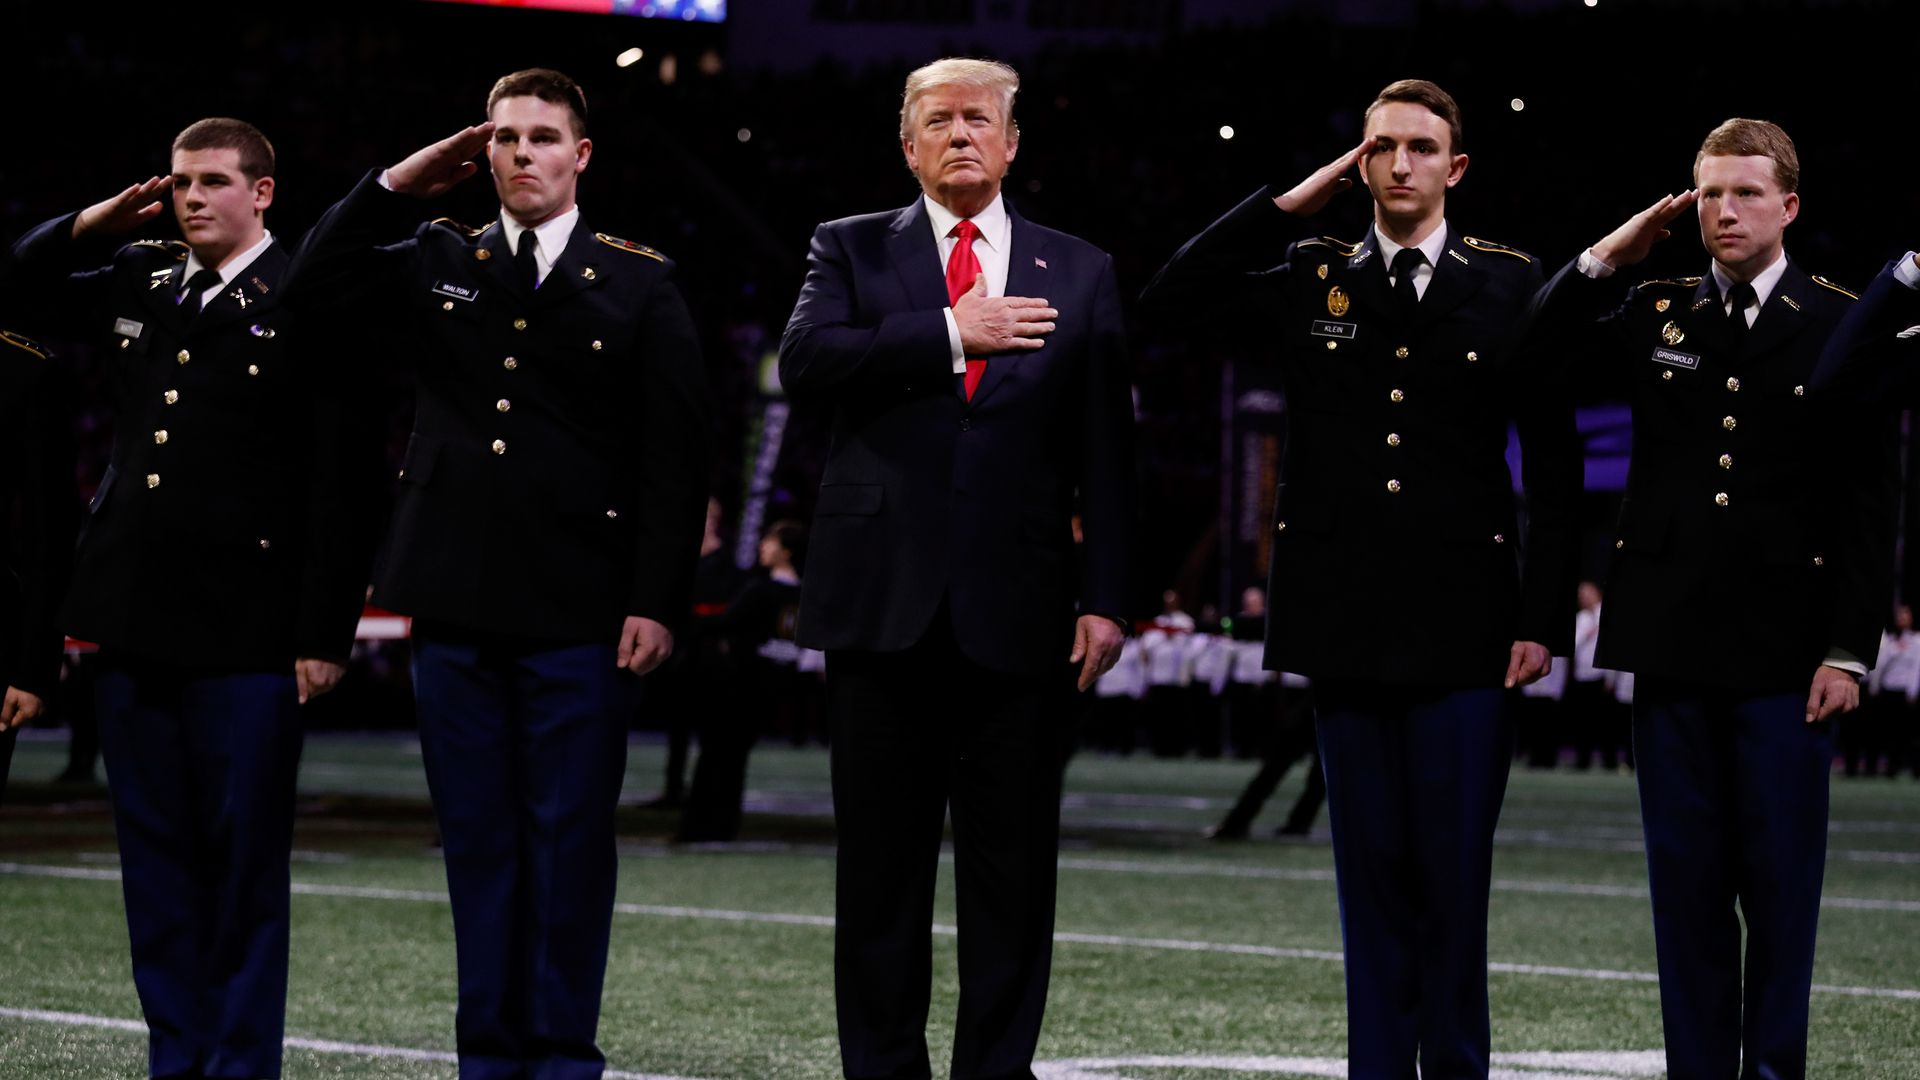 President Trump with his hand over his heart during the national anthem